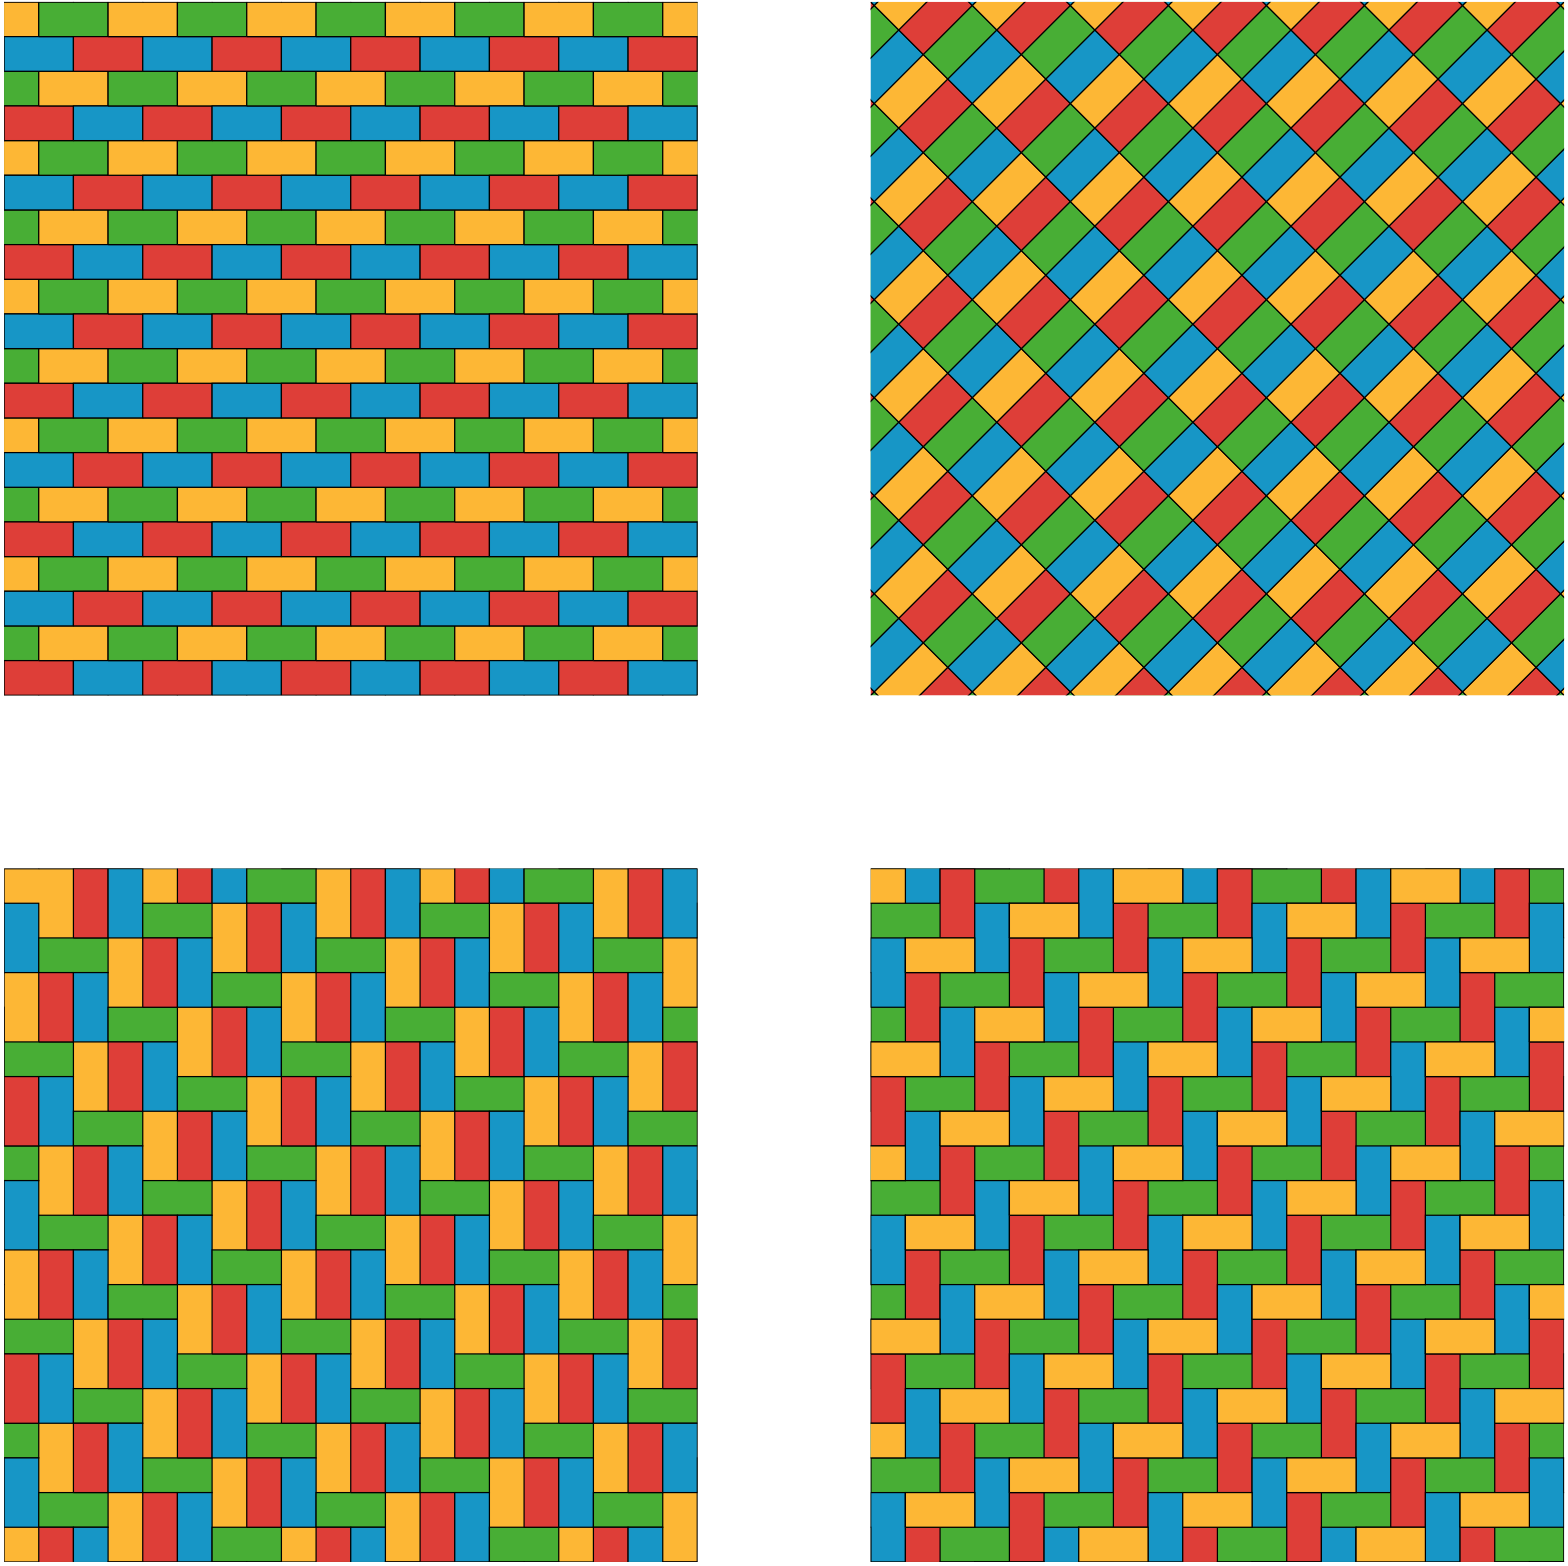 This should not be a alt text description. Tactile is needed.....Four tessellations.One tessellation has groups repeating rows of two rectangles. The first row has yellow and green alternating rectangles and the second row has blue and red alternating rectangles. Another tessellation has alternating blue and red alternating rectangles slanted upward and to the right. Below the red and blue rectangles are alternating yellow and green rectangles.  A third tessellation has groups of three rectangles next to one another, sharing the long sides: the long sides are vertical. In addition to these groups of three rectangles, there are single rectangles with the long side lying horizontally. A fourth tessellation has alternating rectangles placed horizontally then vertically.